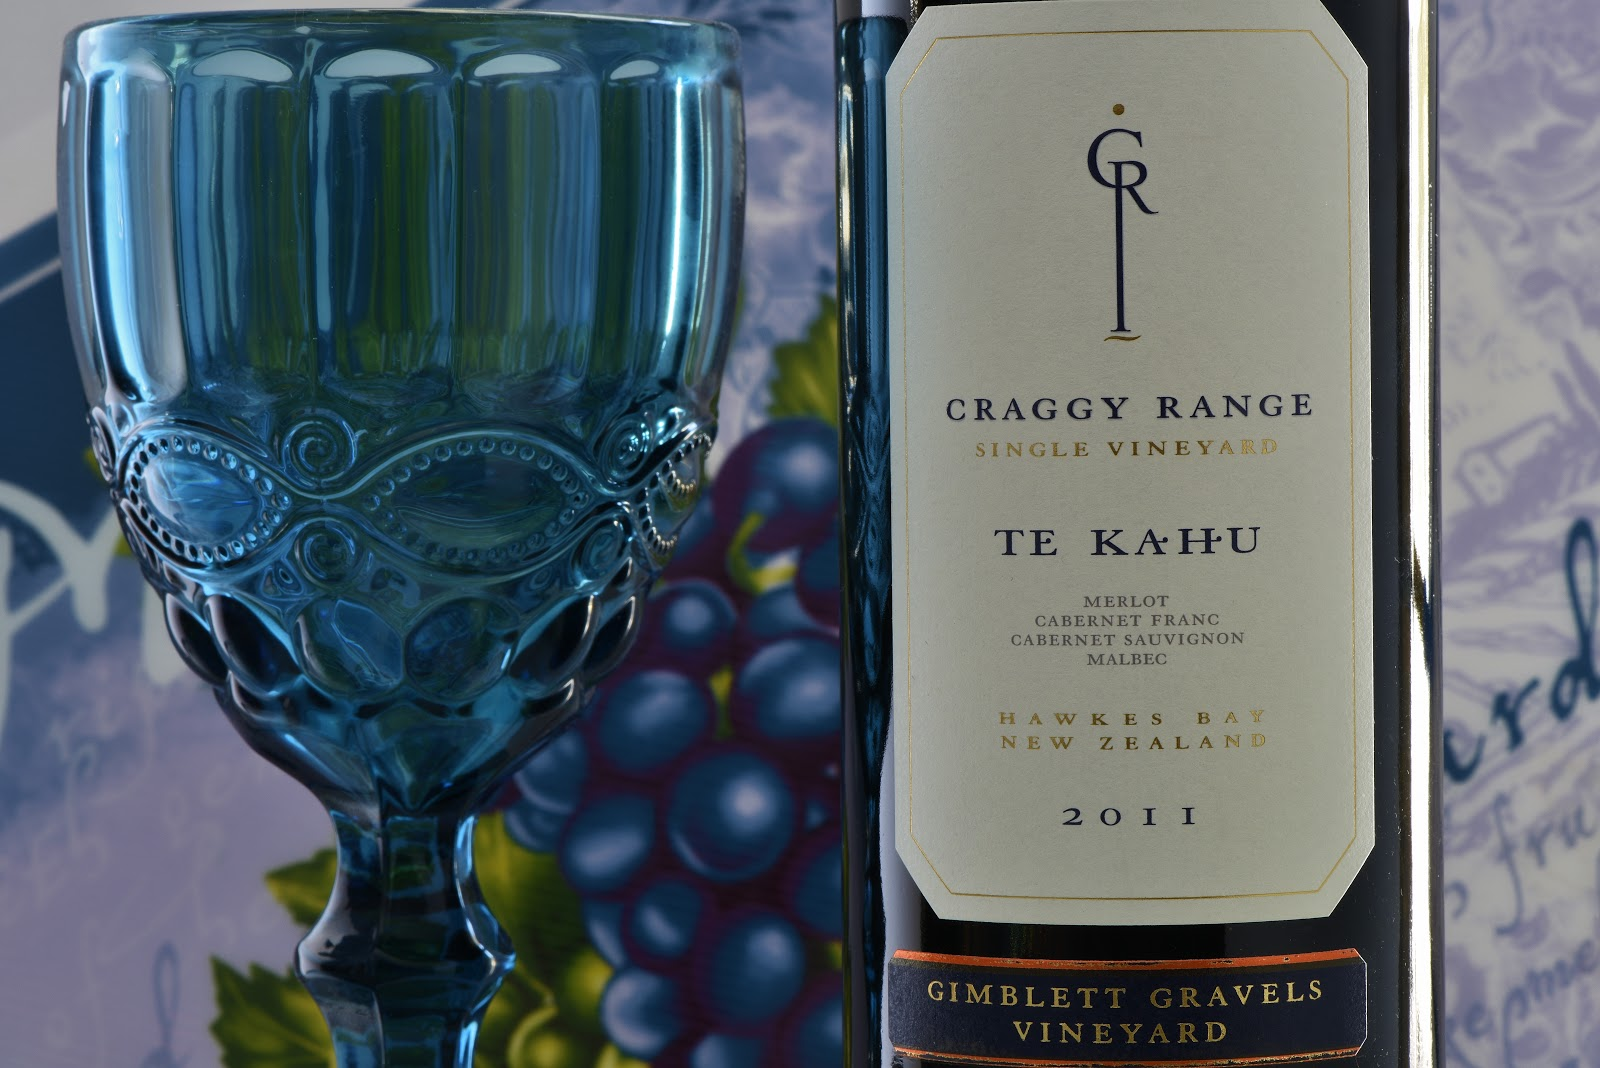 Te Kahu Hawkes Bay New Zealand Craggy Range Single Vineyard 2017 Bordeaux Styled Red Wine 17 59 21 99 89 Points Poured A Pantone Burgundy Color With